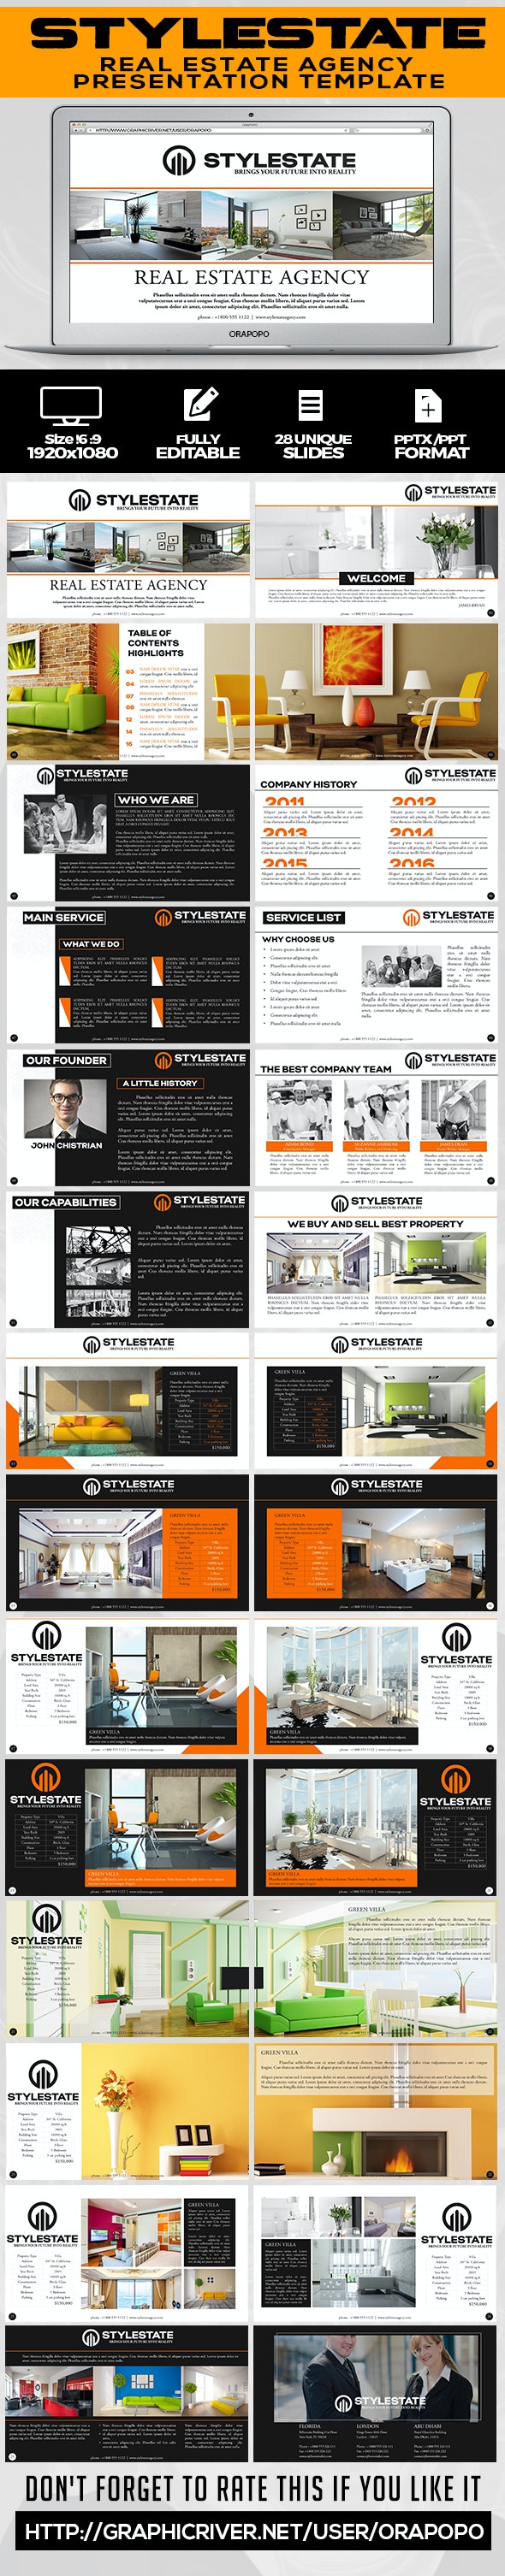 Stylestate   Real Estate Agency Presentation Template  - Business PowerPoint Templates